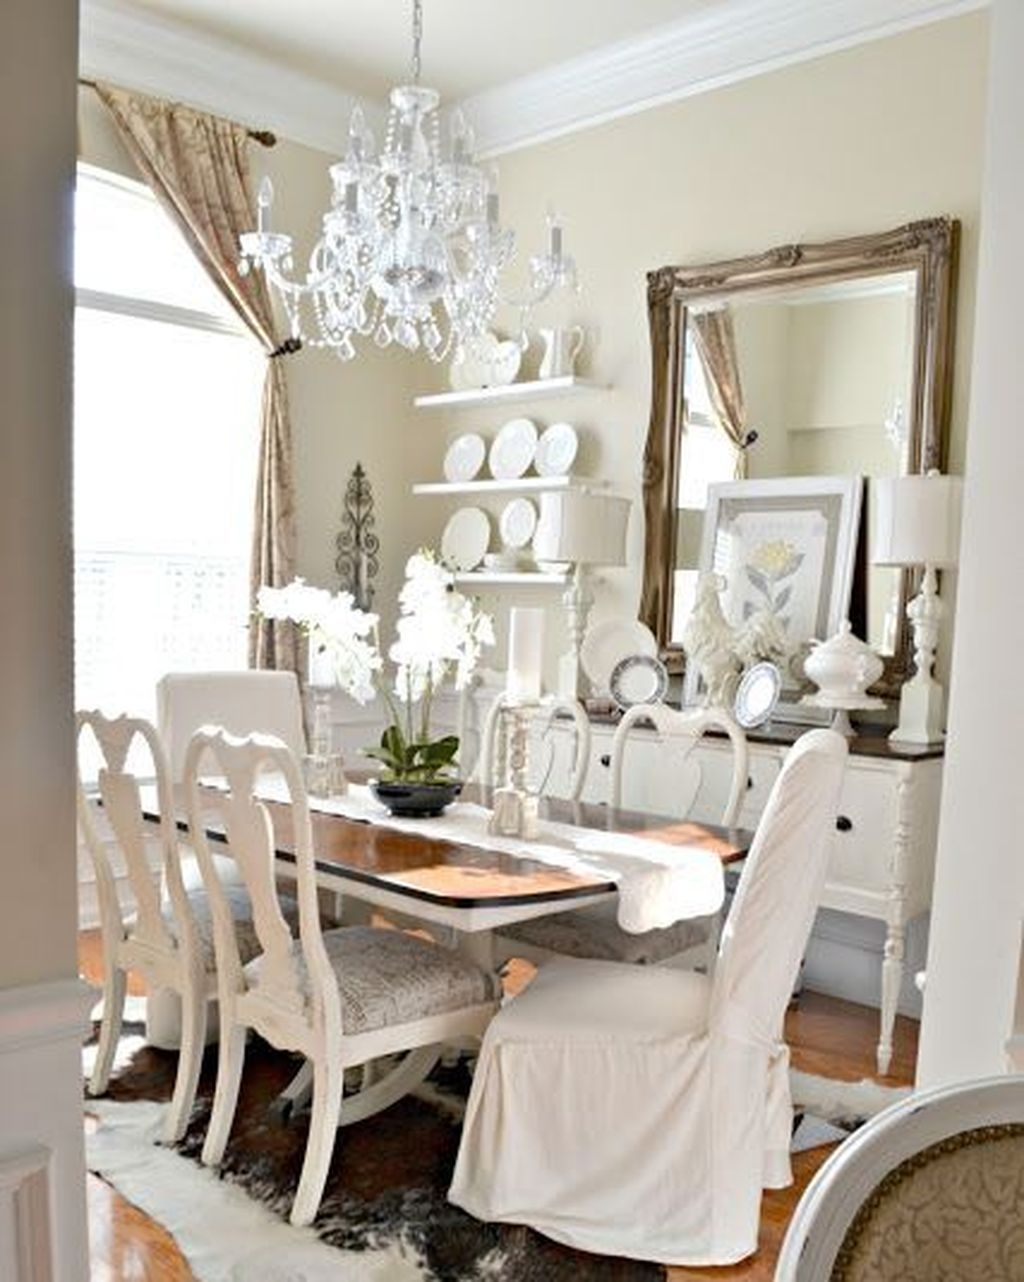 49 Stylish Large Decorative Mirrors Ideas For Dining Room